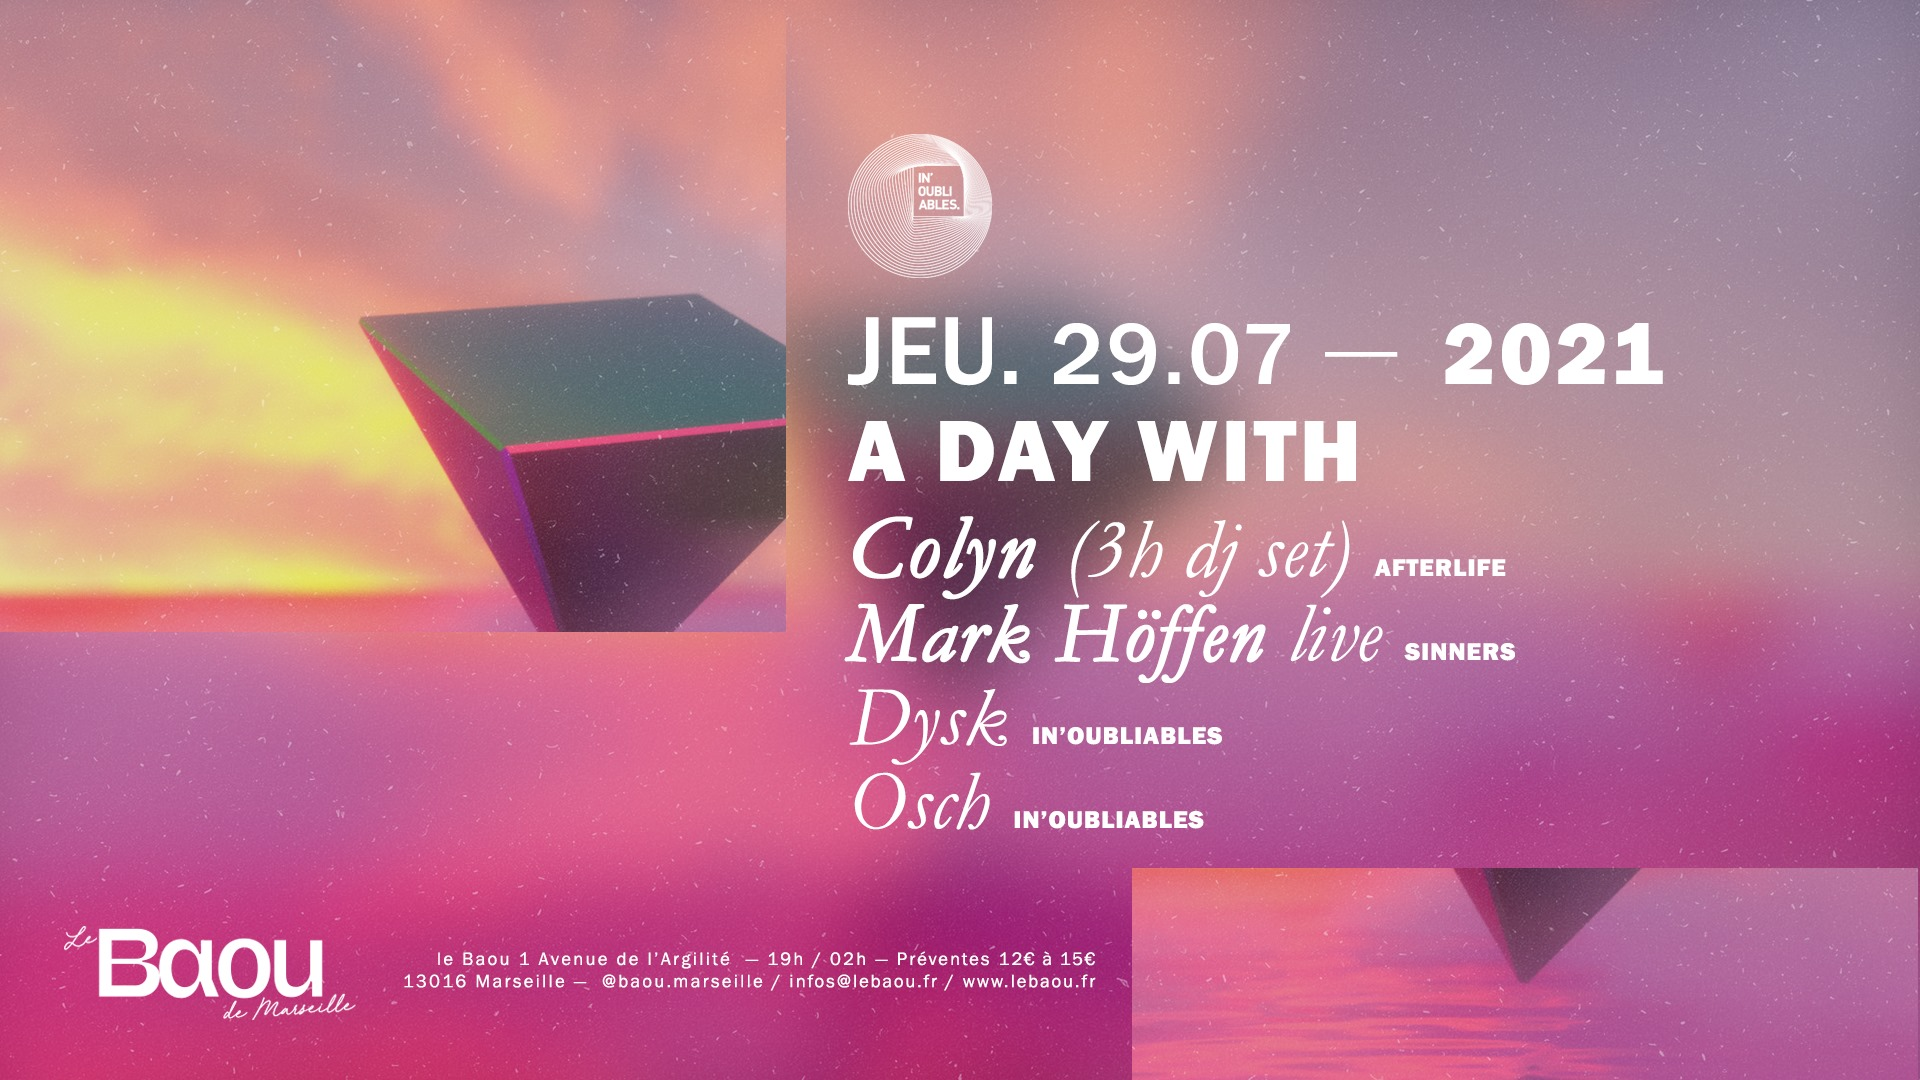 A DAY WITH - Colyn extended set, Mark Höffen Live and guests